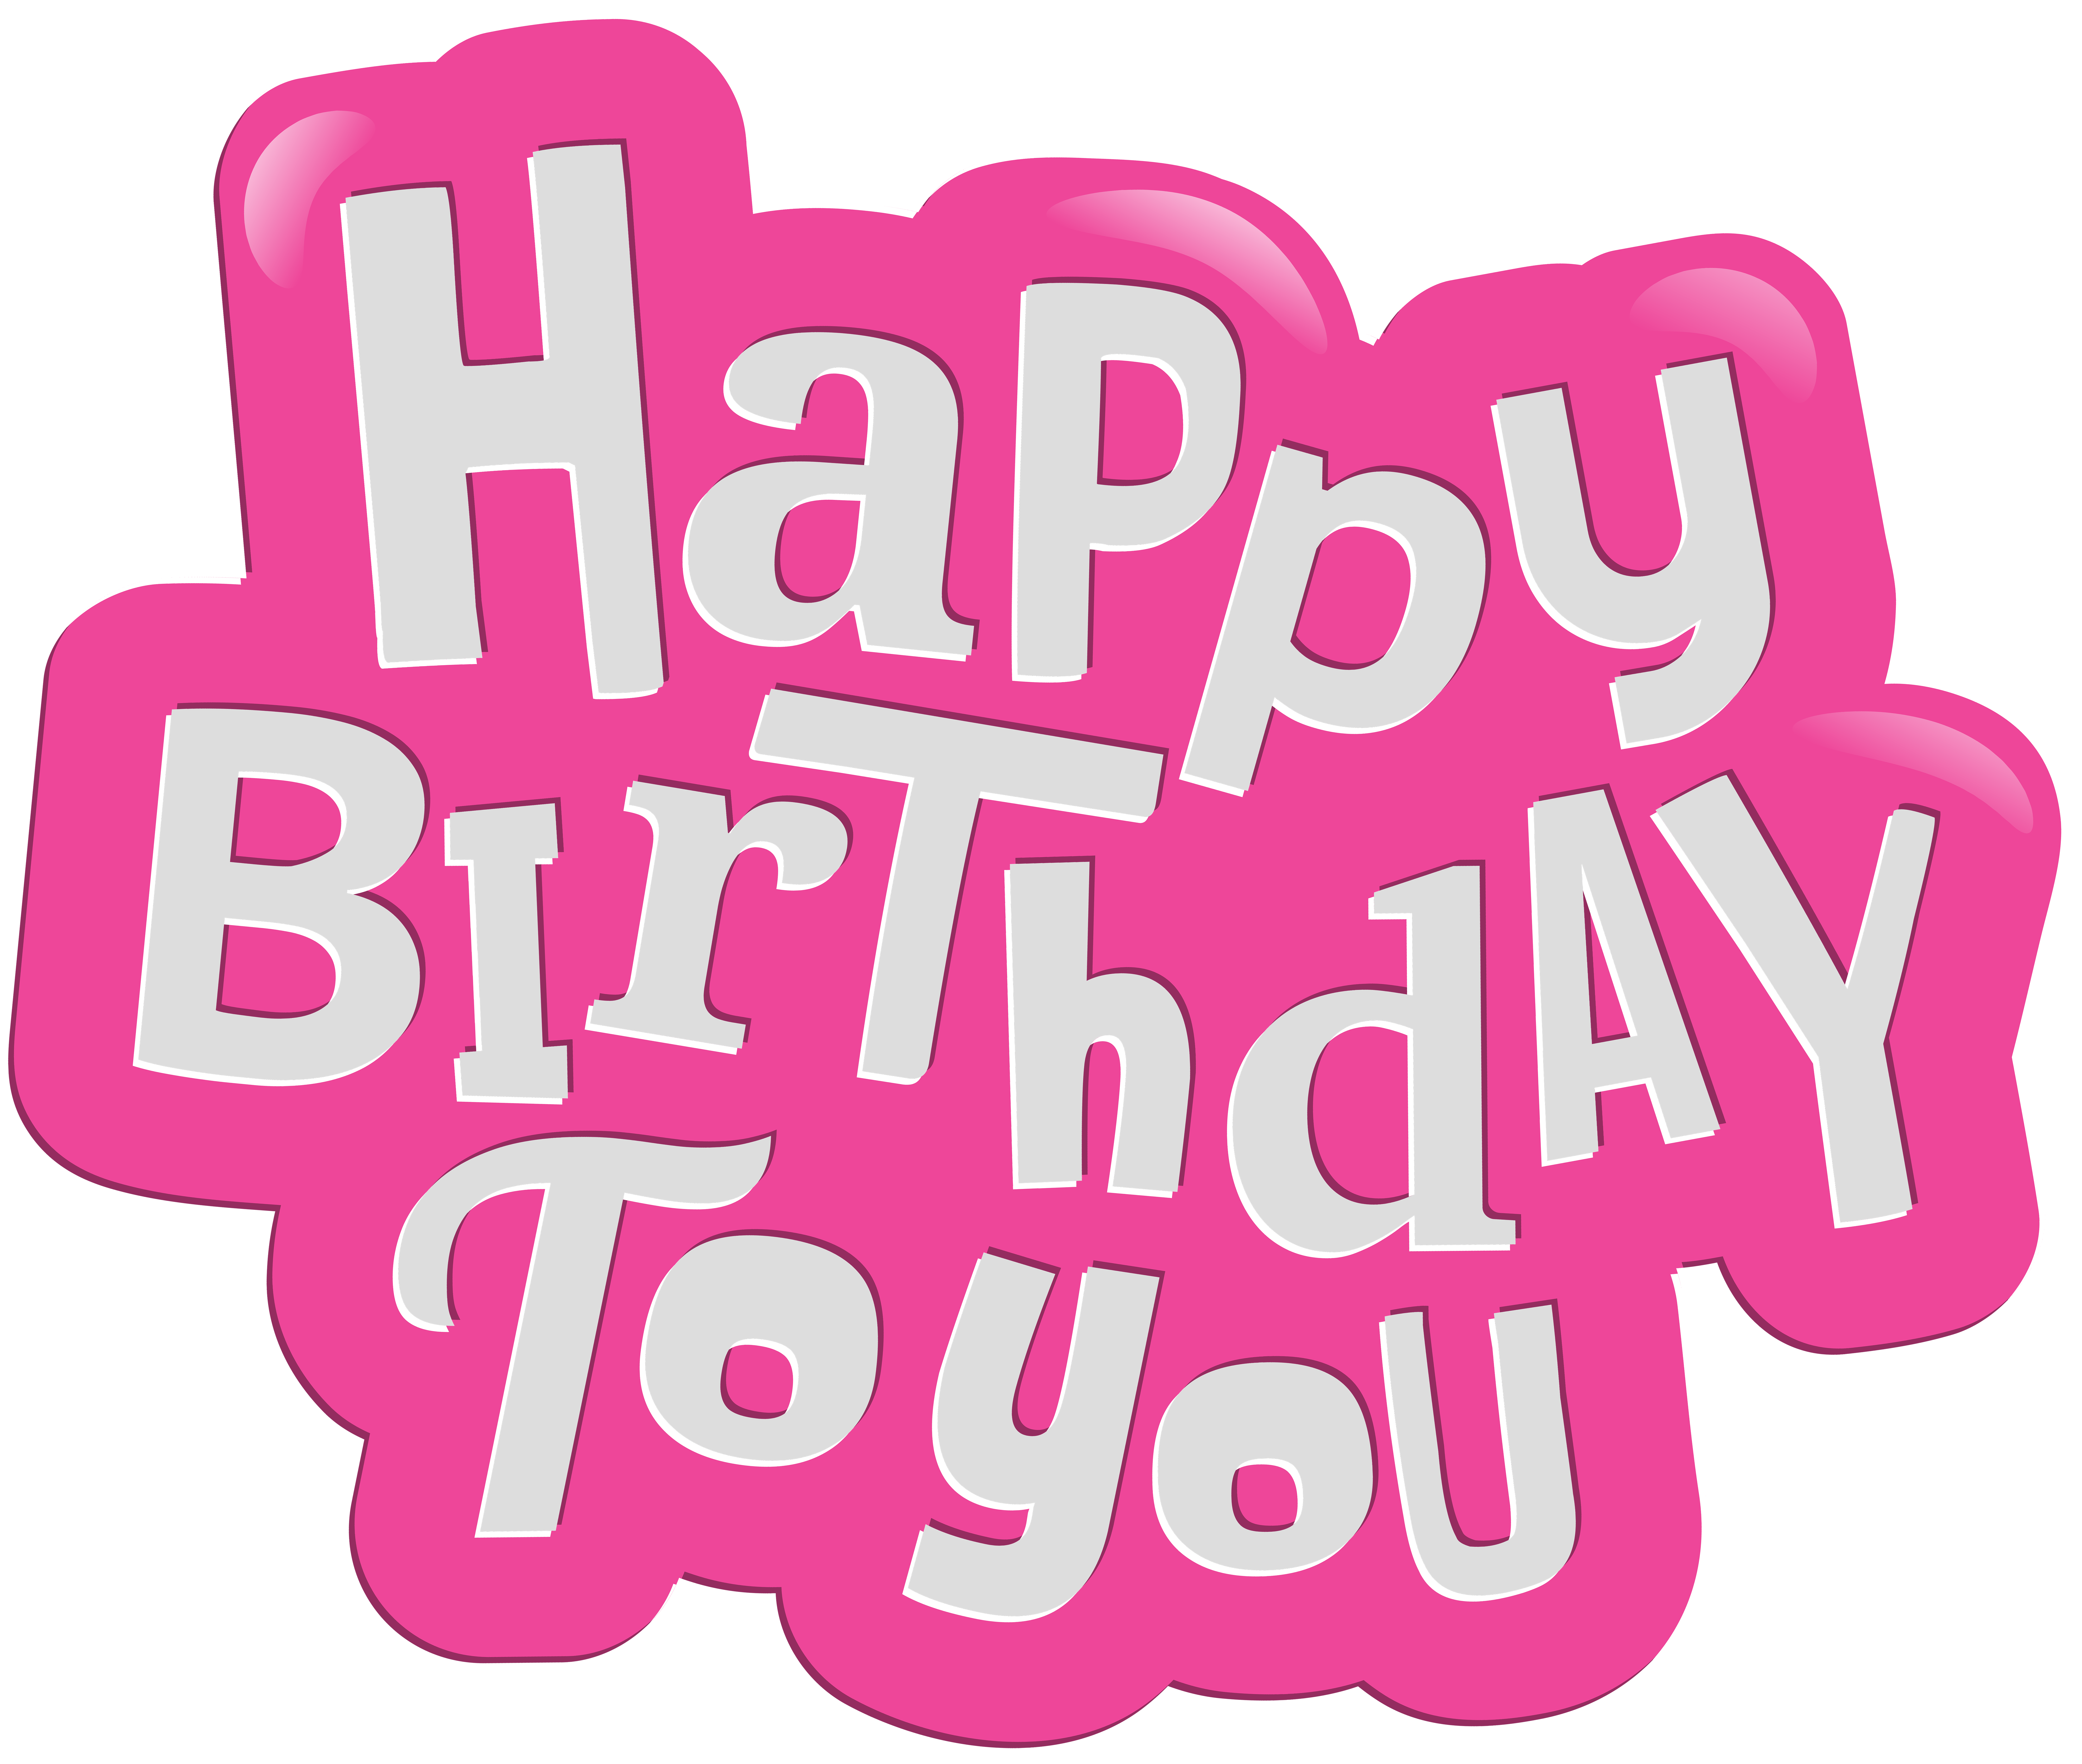 Happy birthday to you. Clipart halloween pink